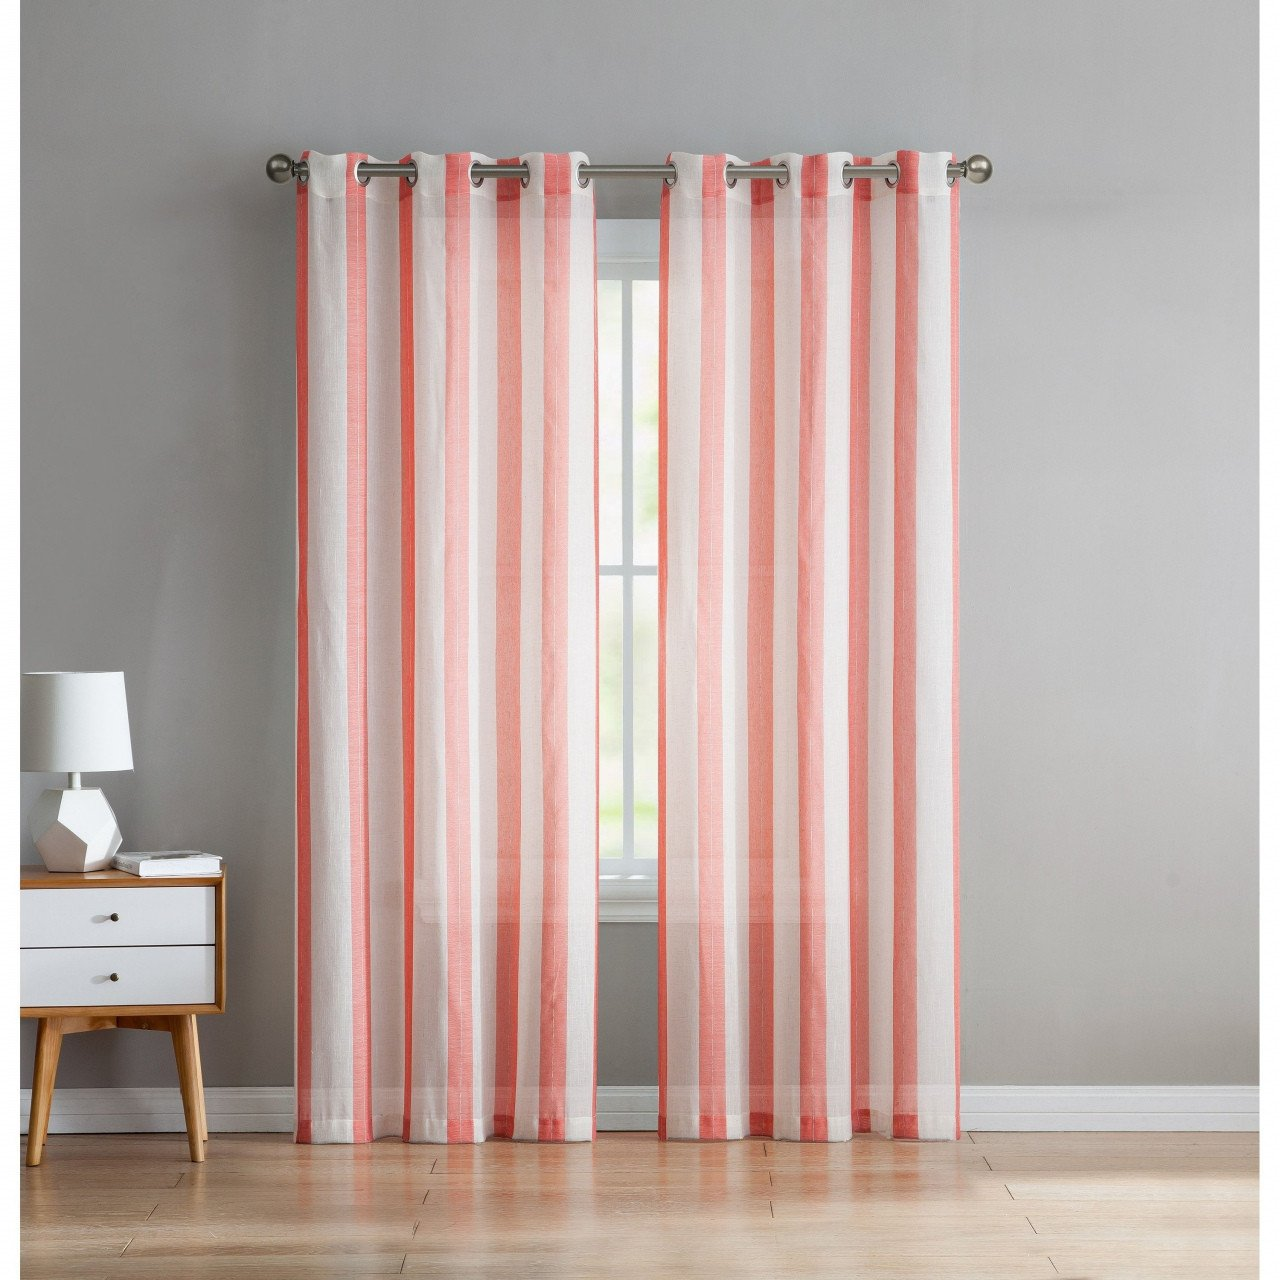 Bedroom Curtains at Walmart Elegant Coral Bedroom Curtains — Procura Home Blog